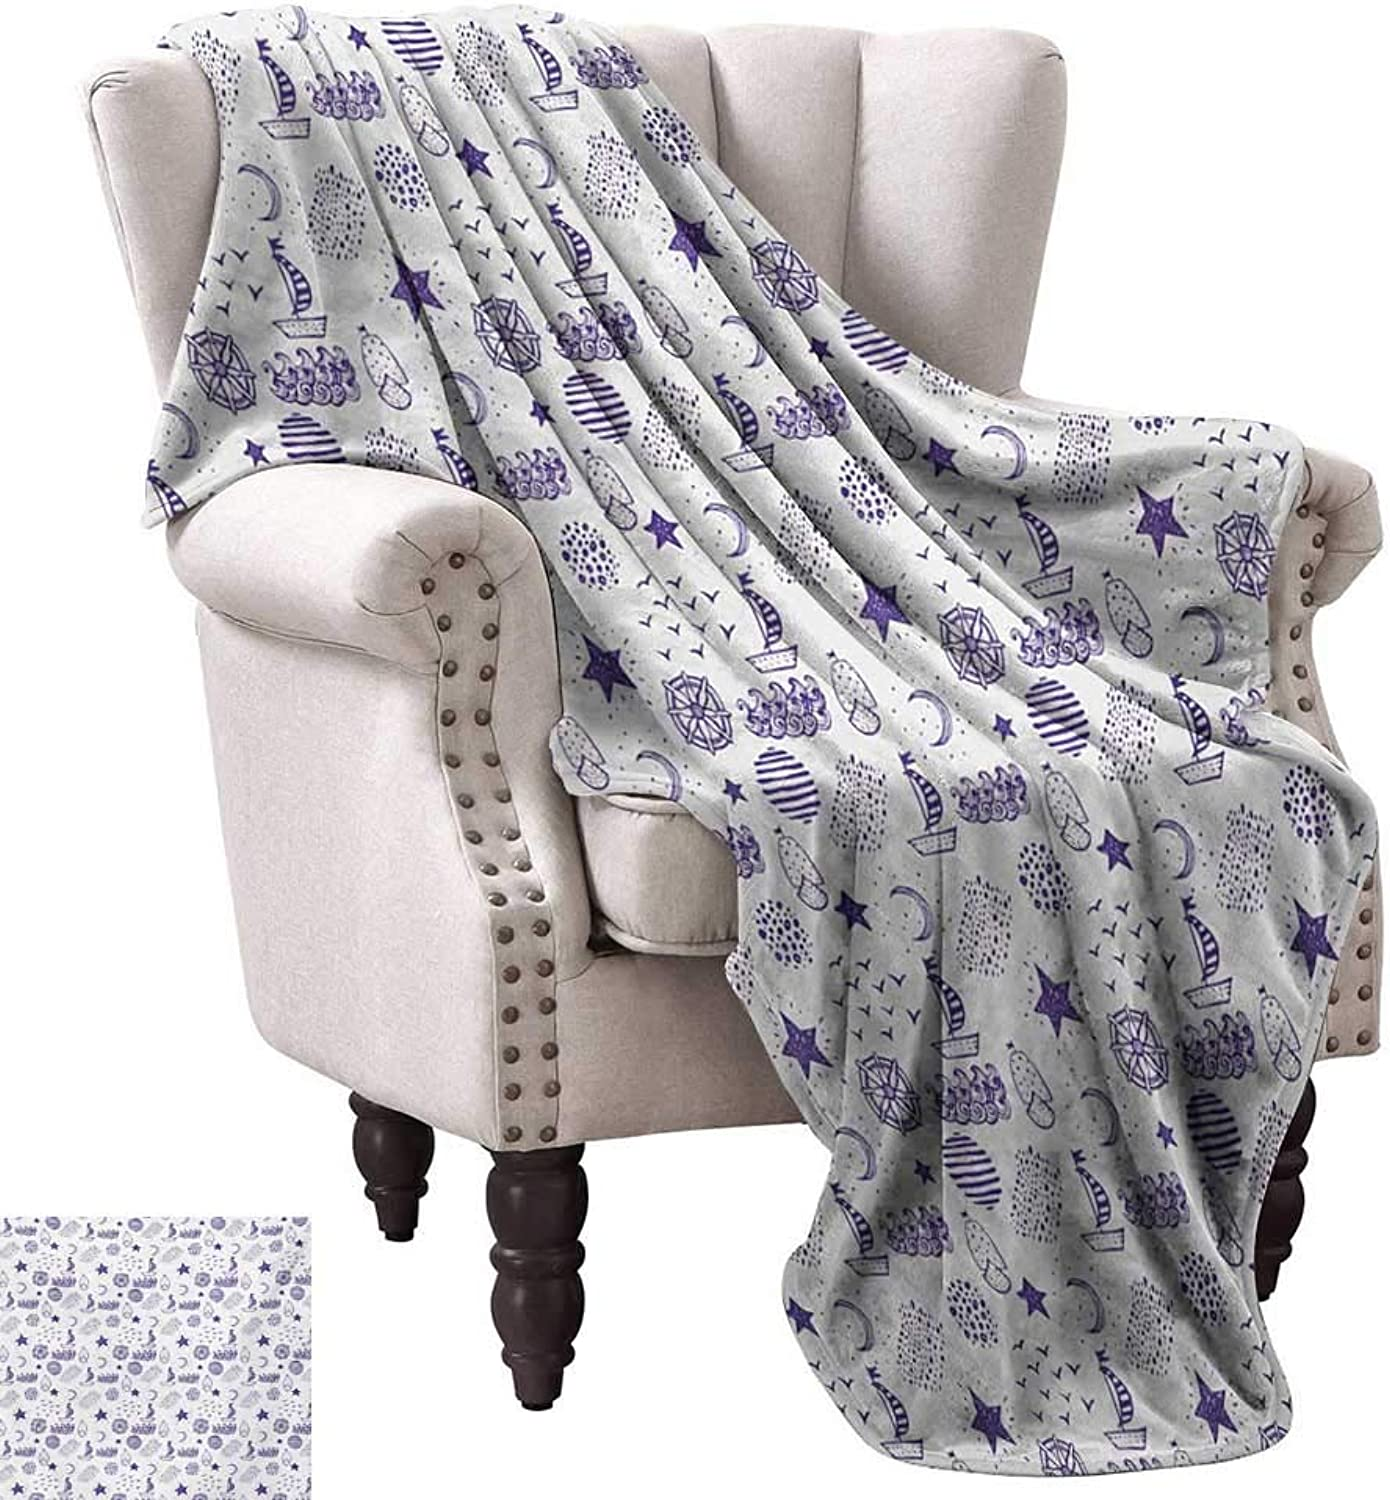 Anyangeight Warm Microfiber All Season Blanket,Hand Drawn Boat Stars Flying Gulls Crescent Moon Shell Waves Kids Girls Cute Pattern 70 x60 ,Super Soft and Comfortable,Suitable for Sofas,Chairs,beds